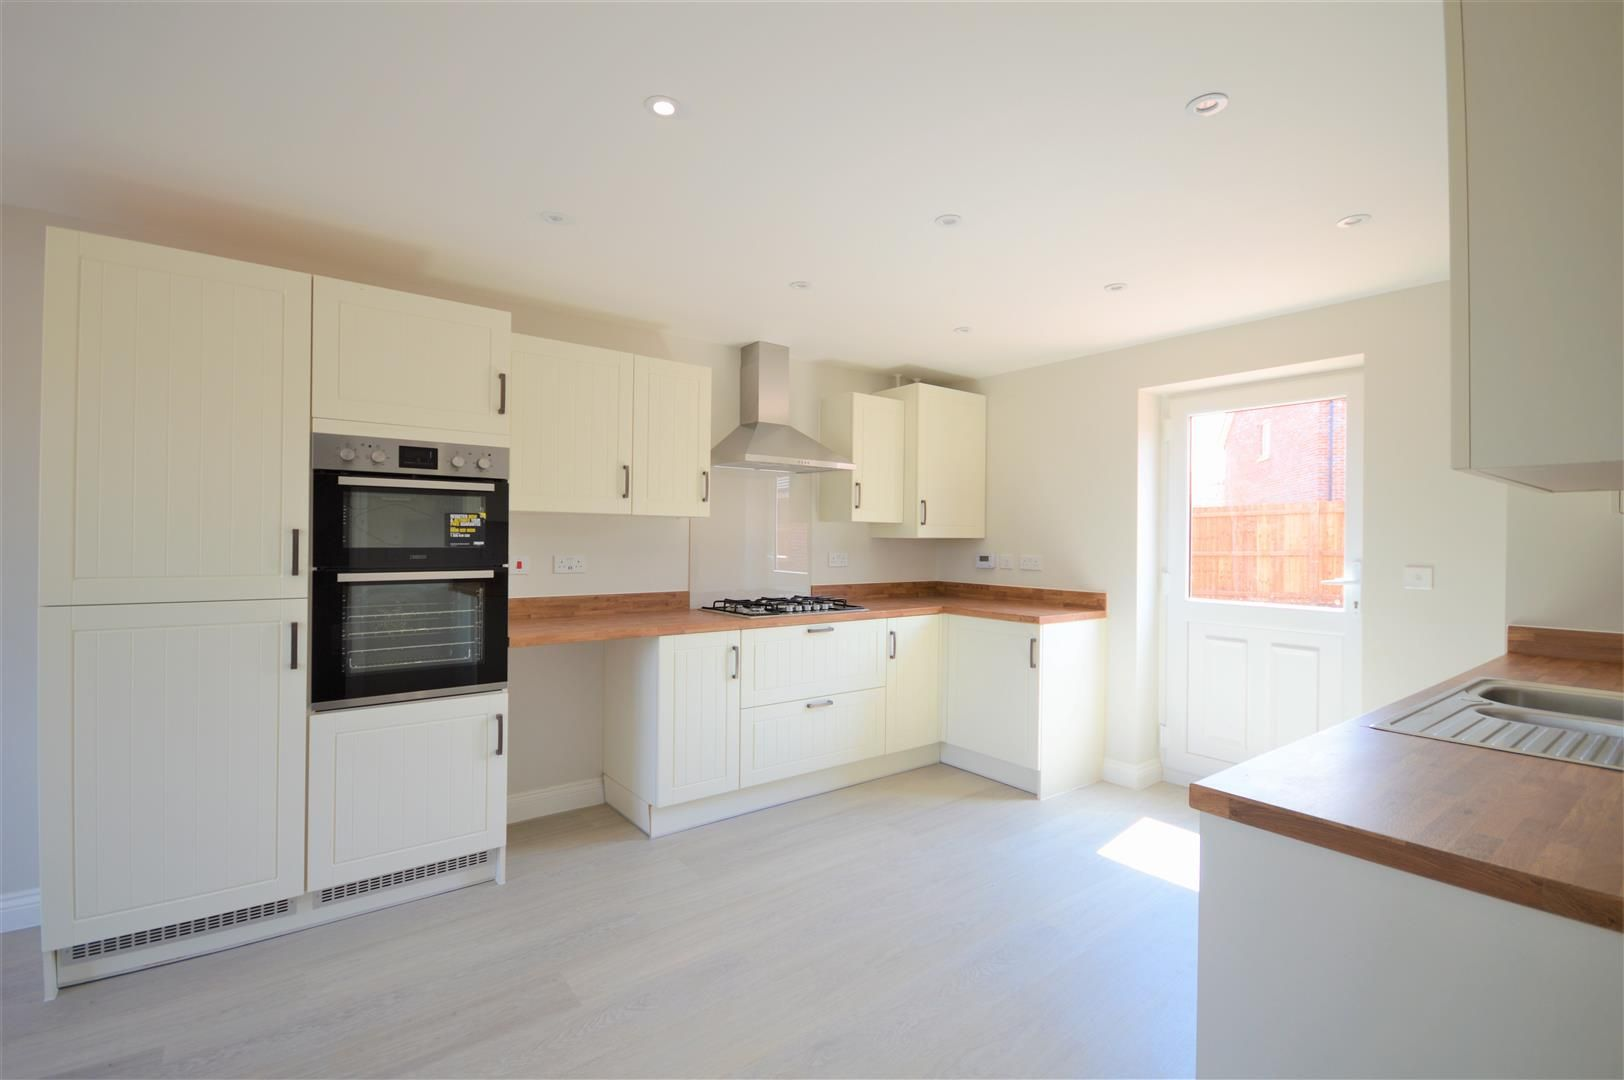 3 bed detached for sale in Kingstone  - Property Image 2